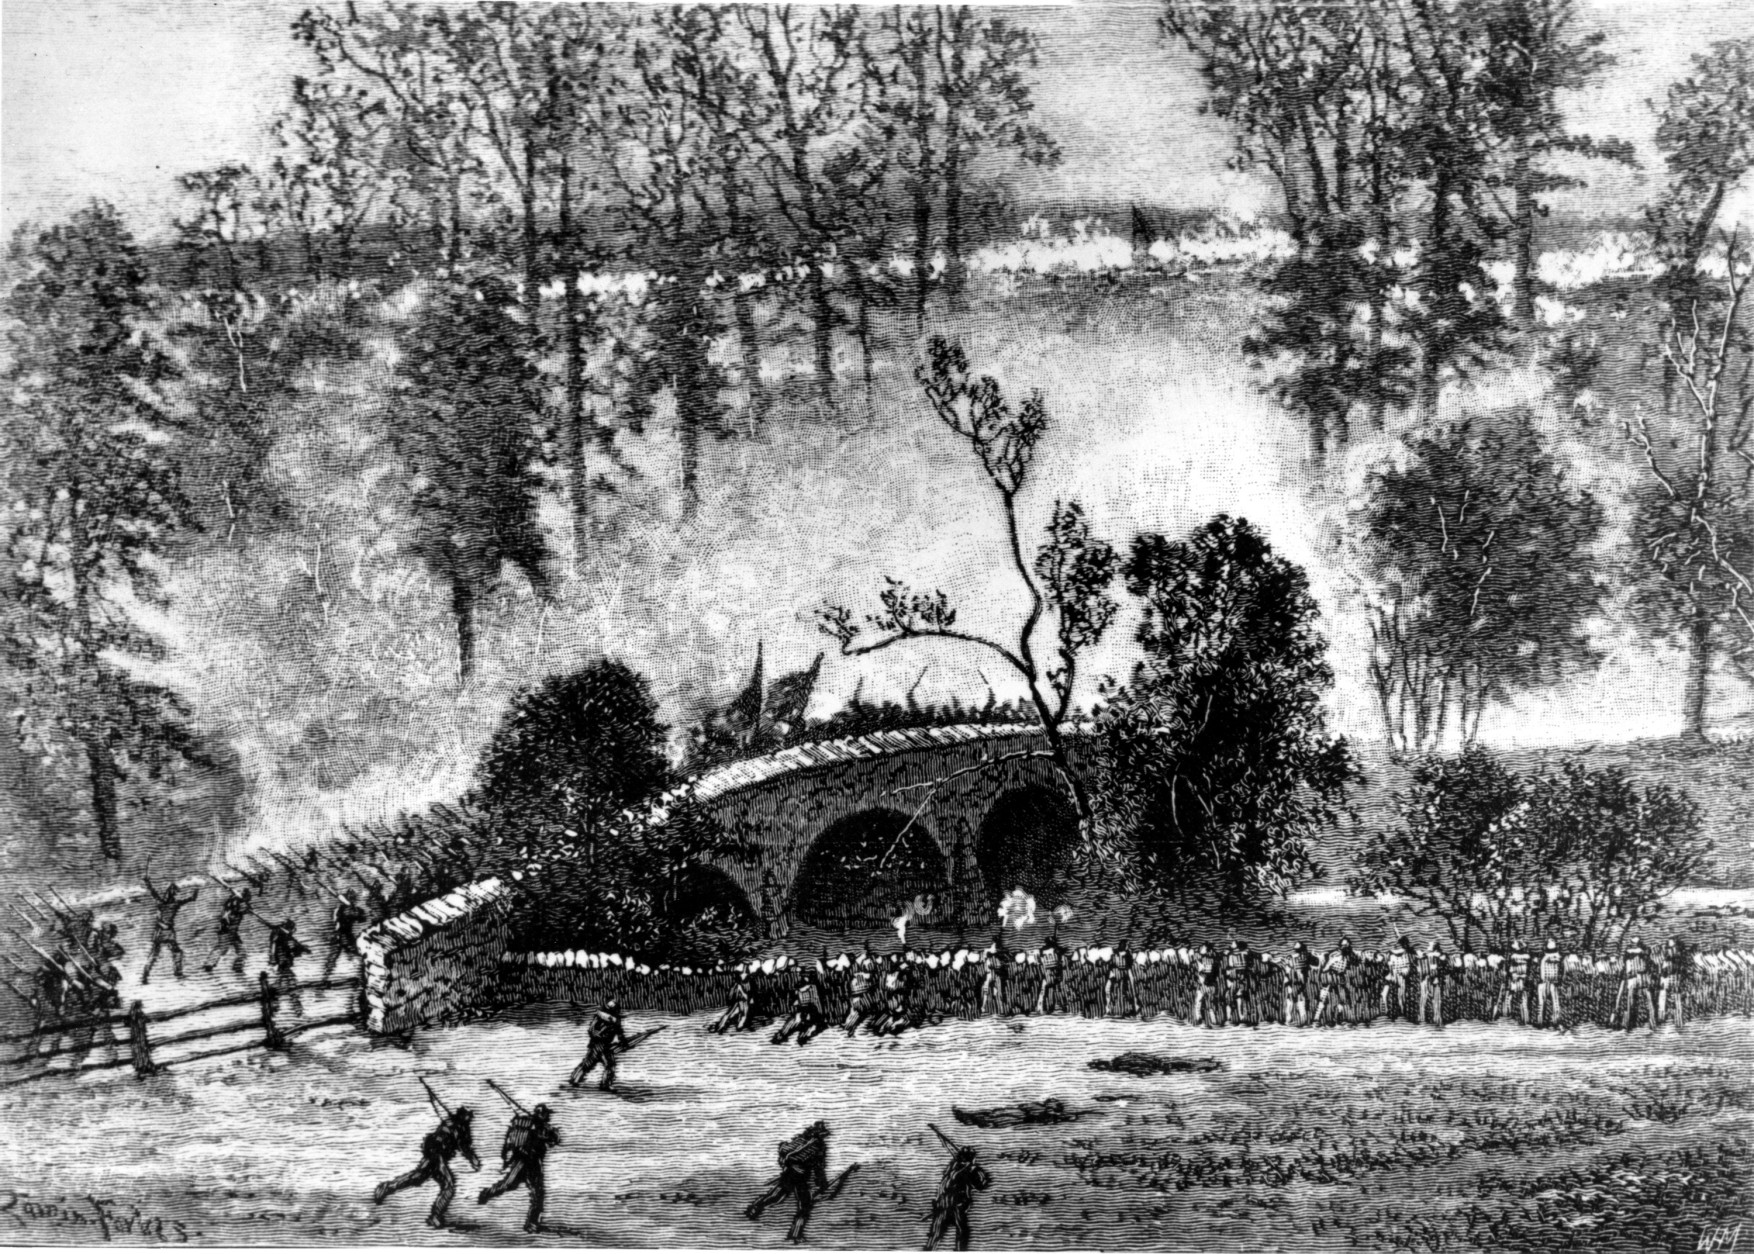 On this date in 1862, more than 3,600 men were killed in the Civil War Battle of Antietam in Maryland. (AP Photo)